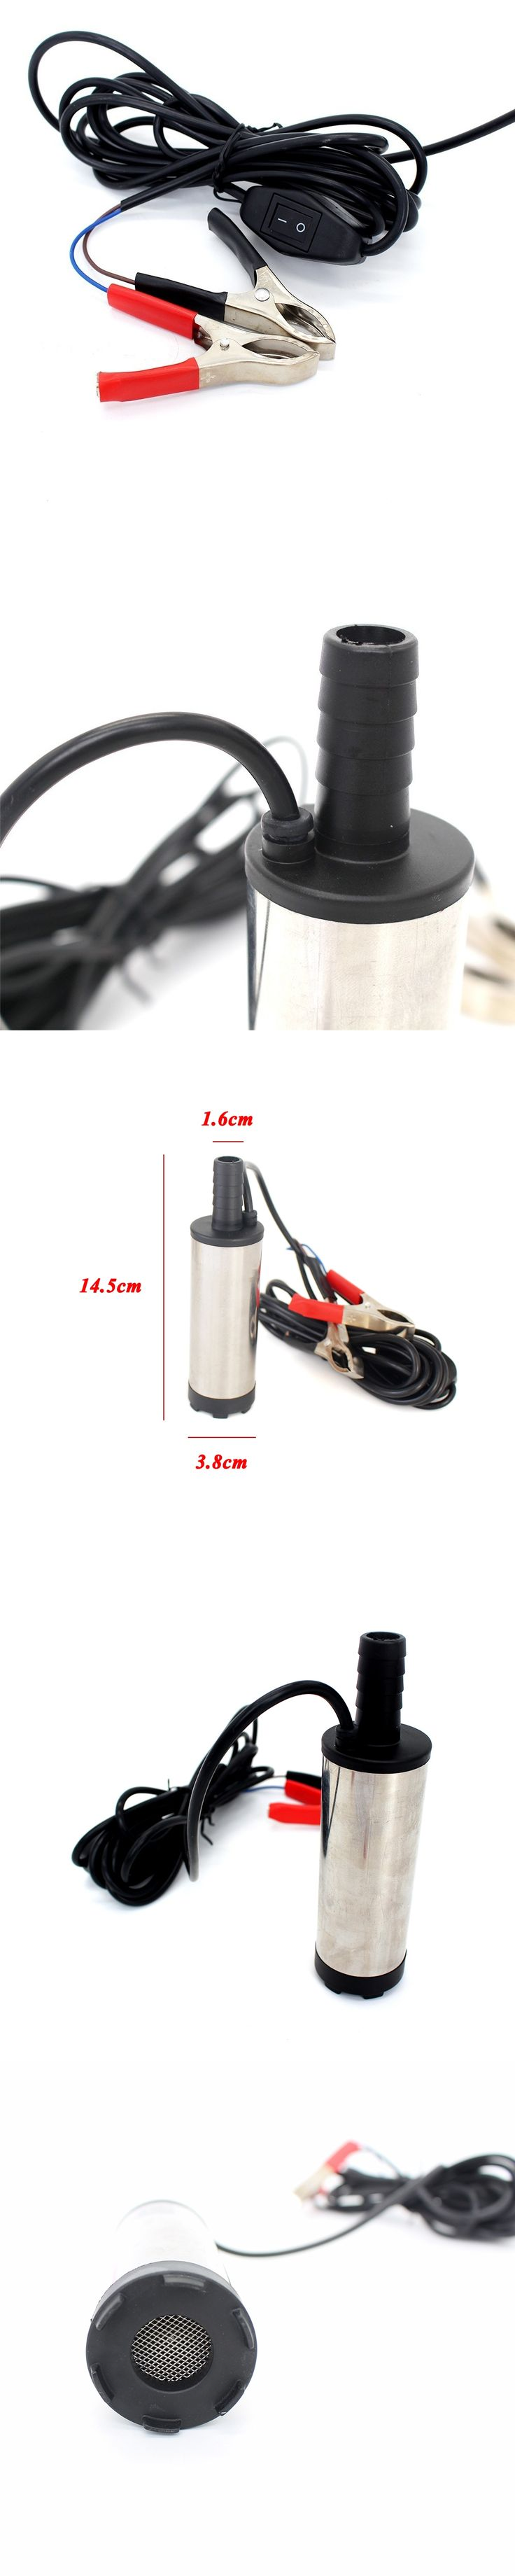 12V 24V DC electric submersible pump for pumping diesel oil water ,Stainless steel shell,12L/min,fuel transfer pump 12 V volt